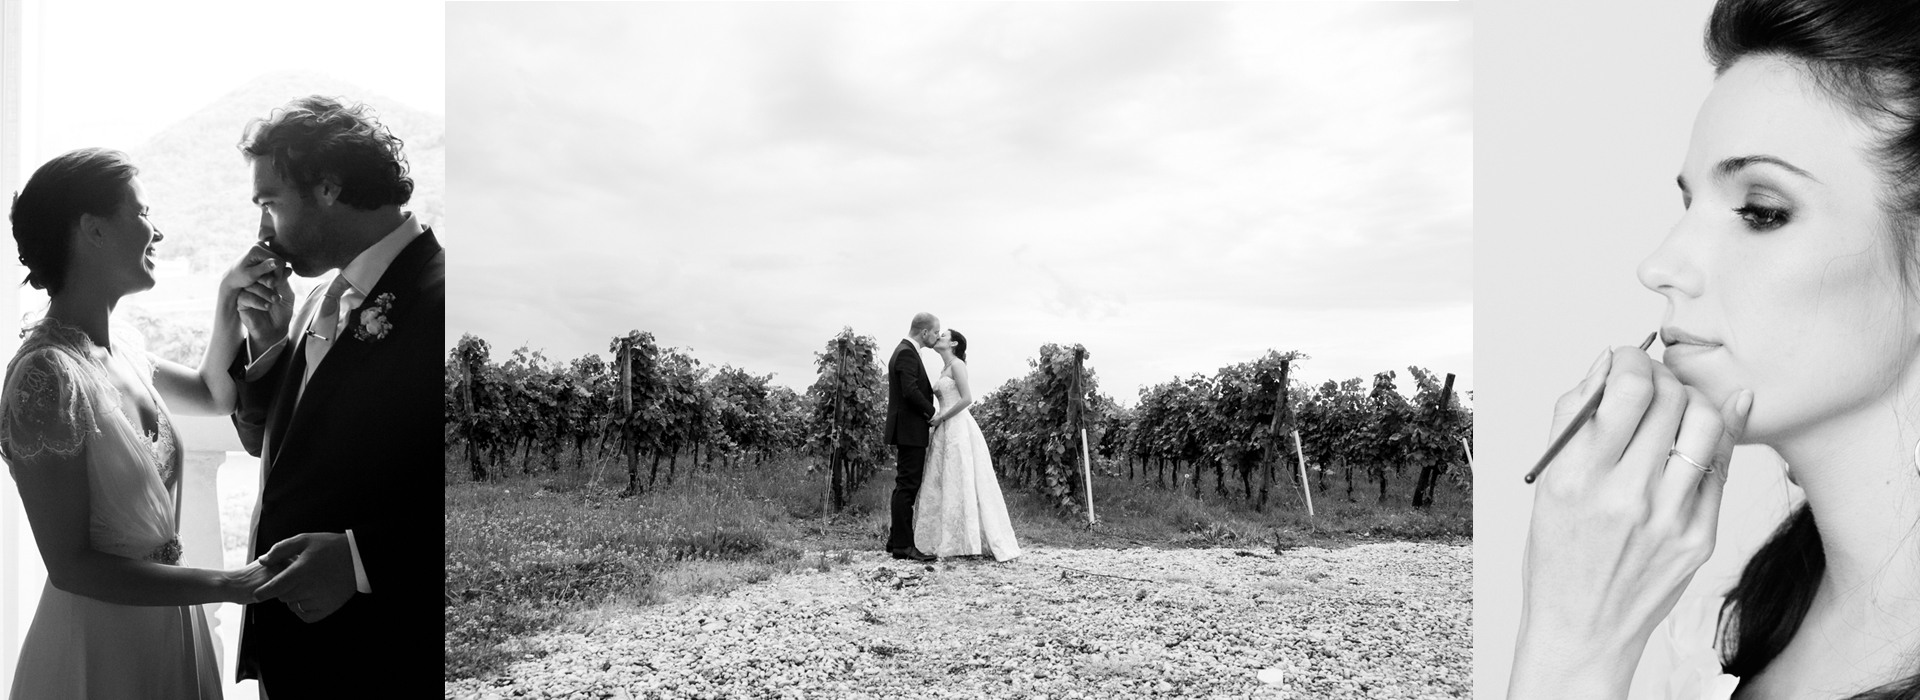 destination wedding, engagement sessions, italian photographer, italian style, hipster wedding photography, photographer barcelona, photographer italy, wedding photographer italy, wedding photographer spain, destination wedding photographer